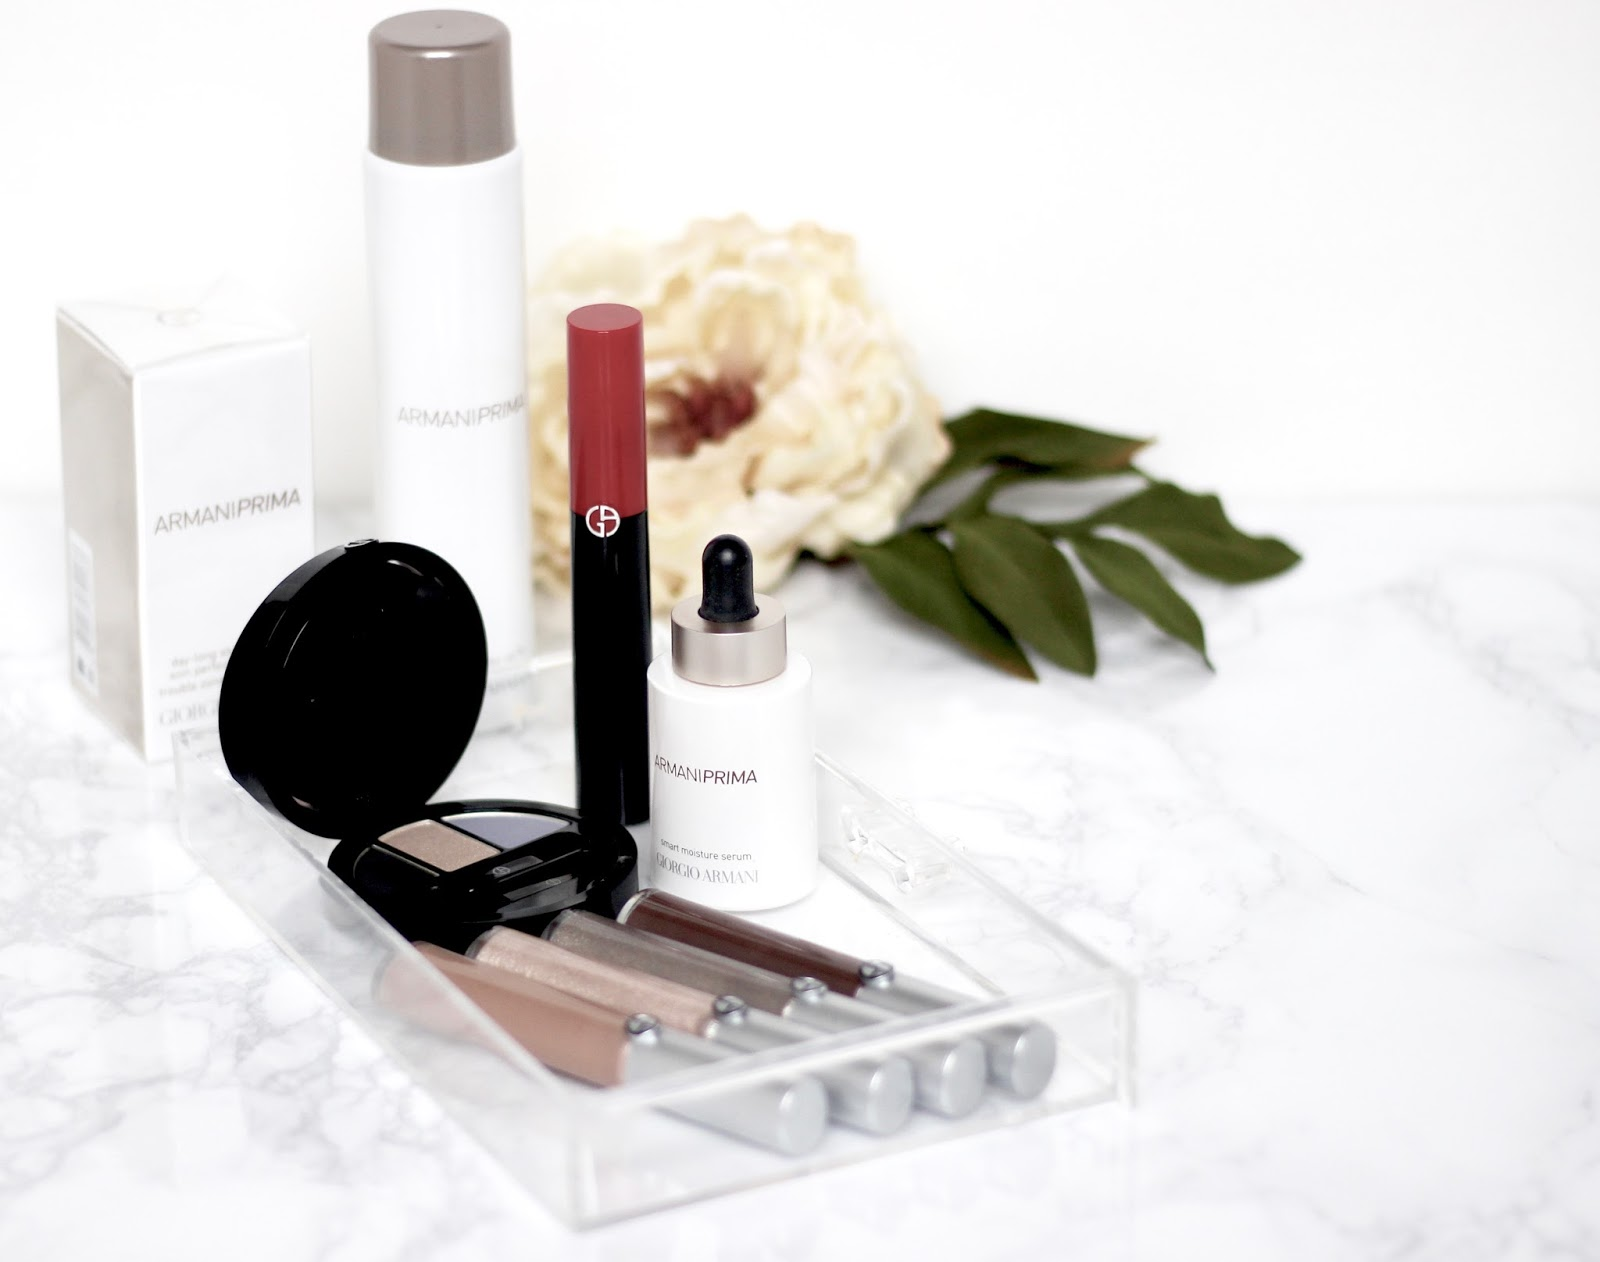 Armani beauty eye-tint and prima collection